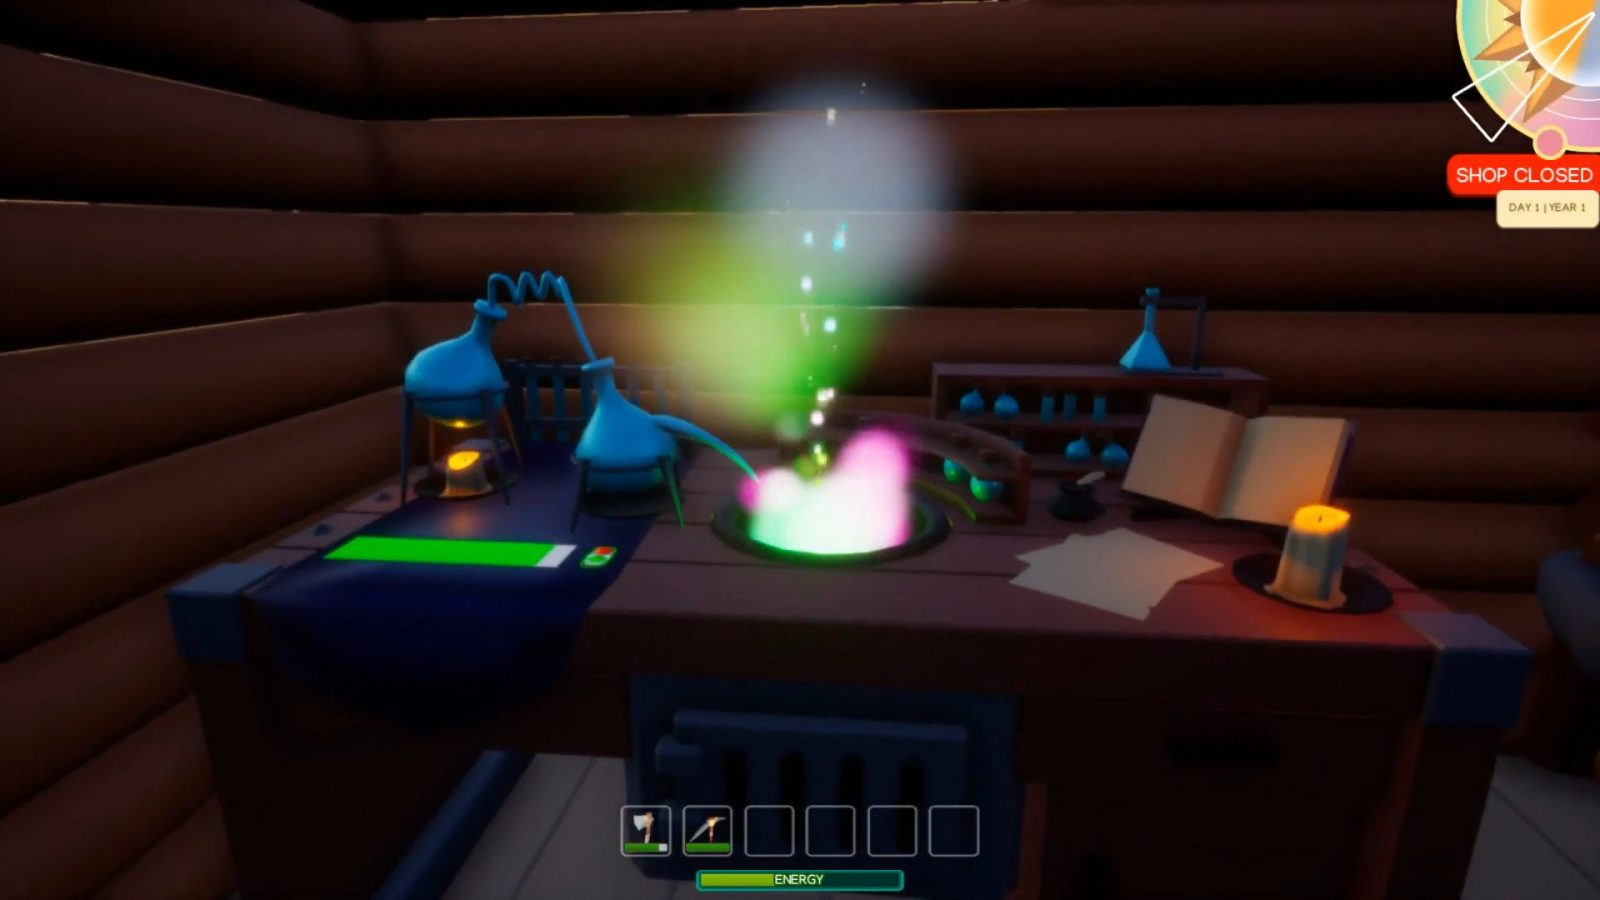 Peaceful Sandbox Alchemy Garden Is Coming to Steam, Demo Available Now